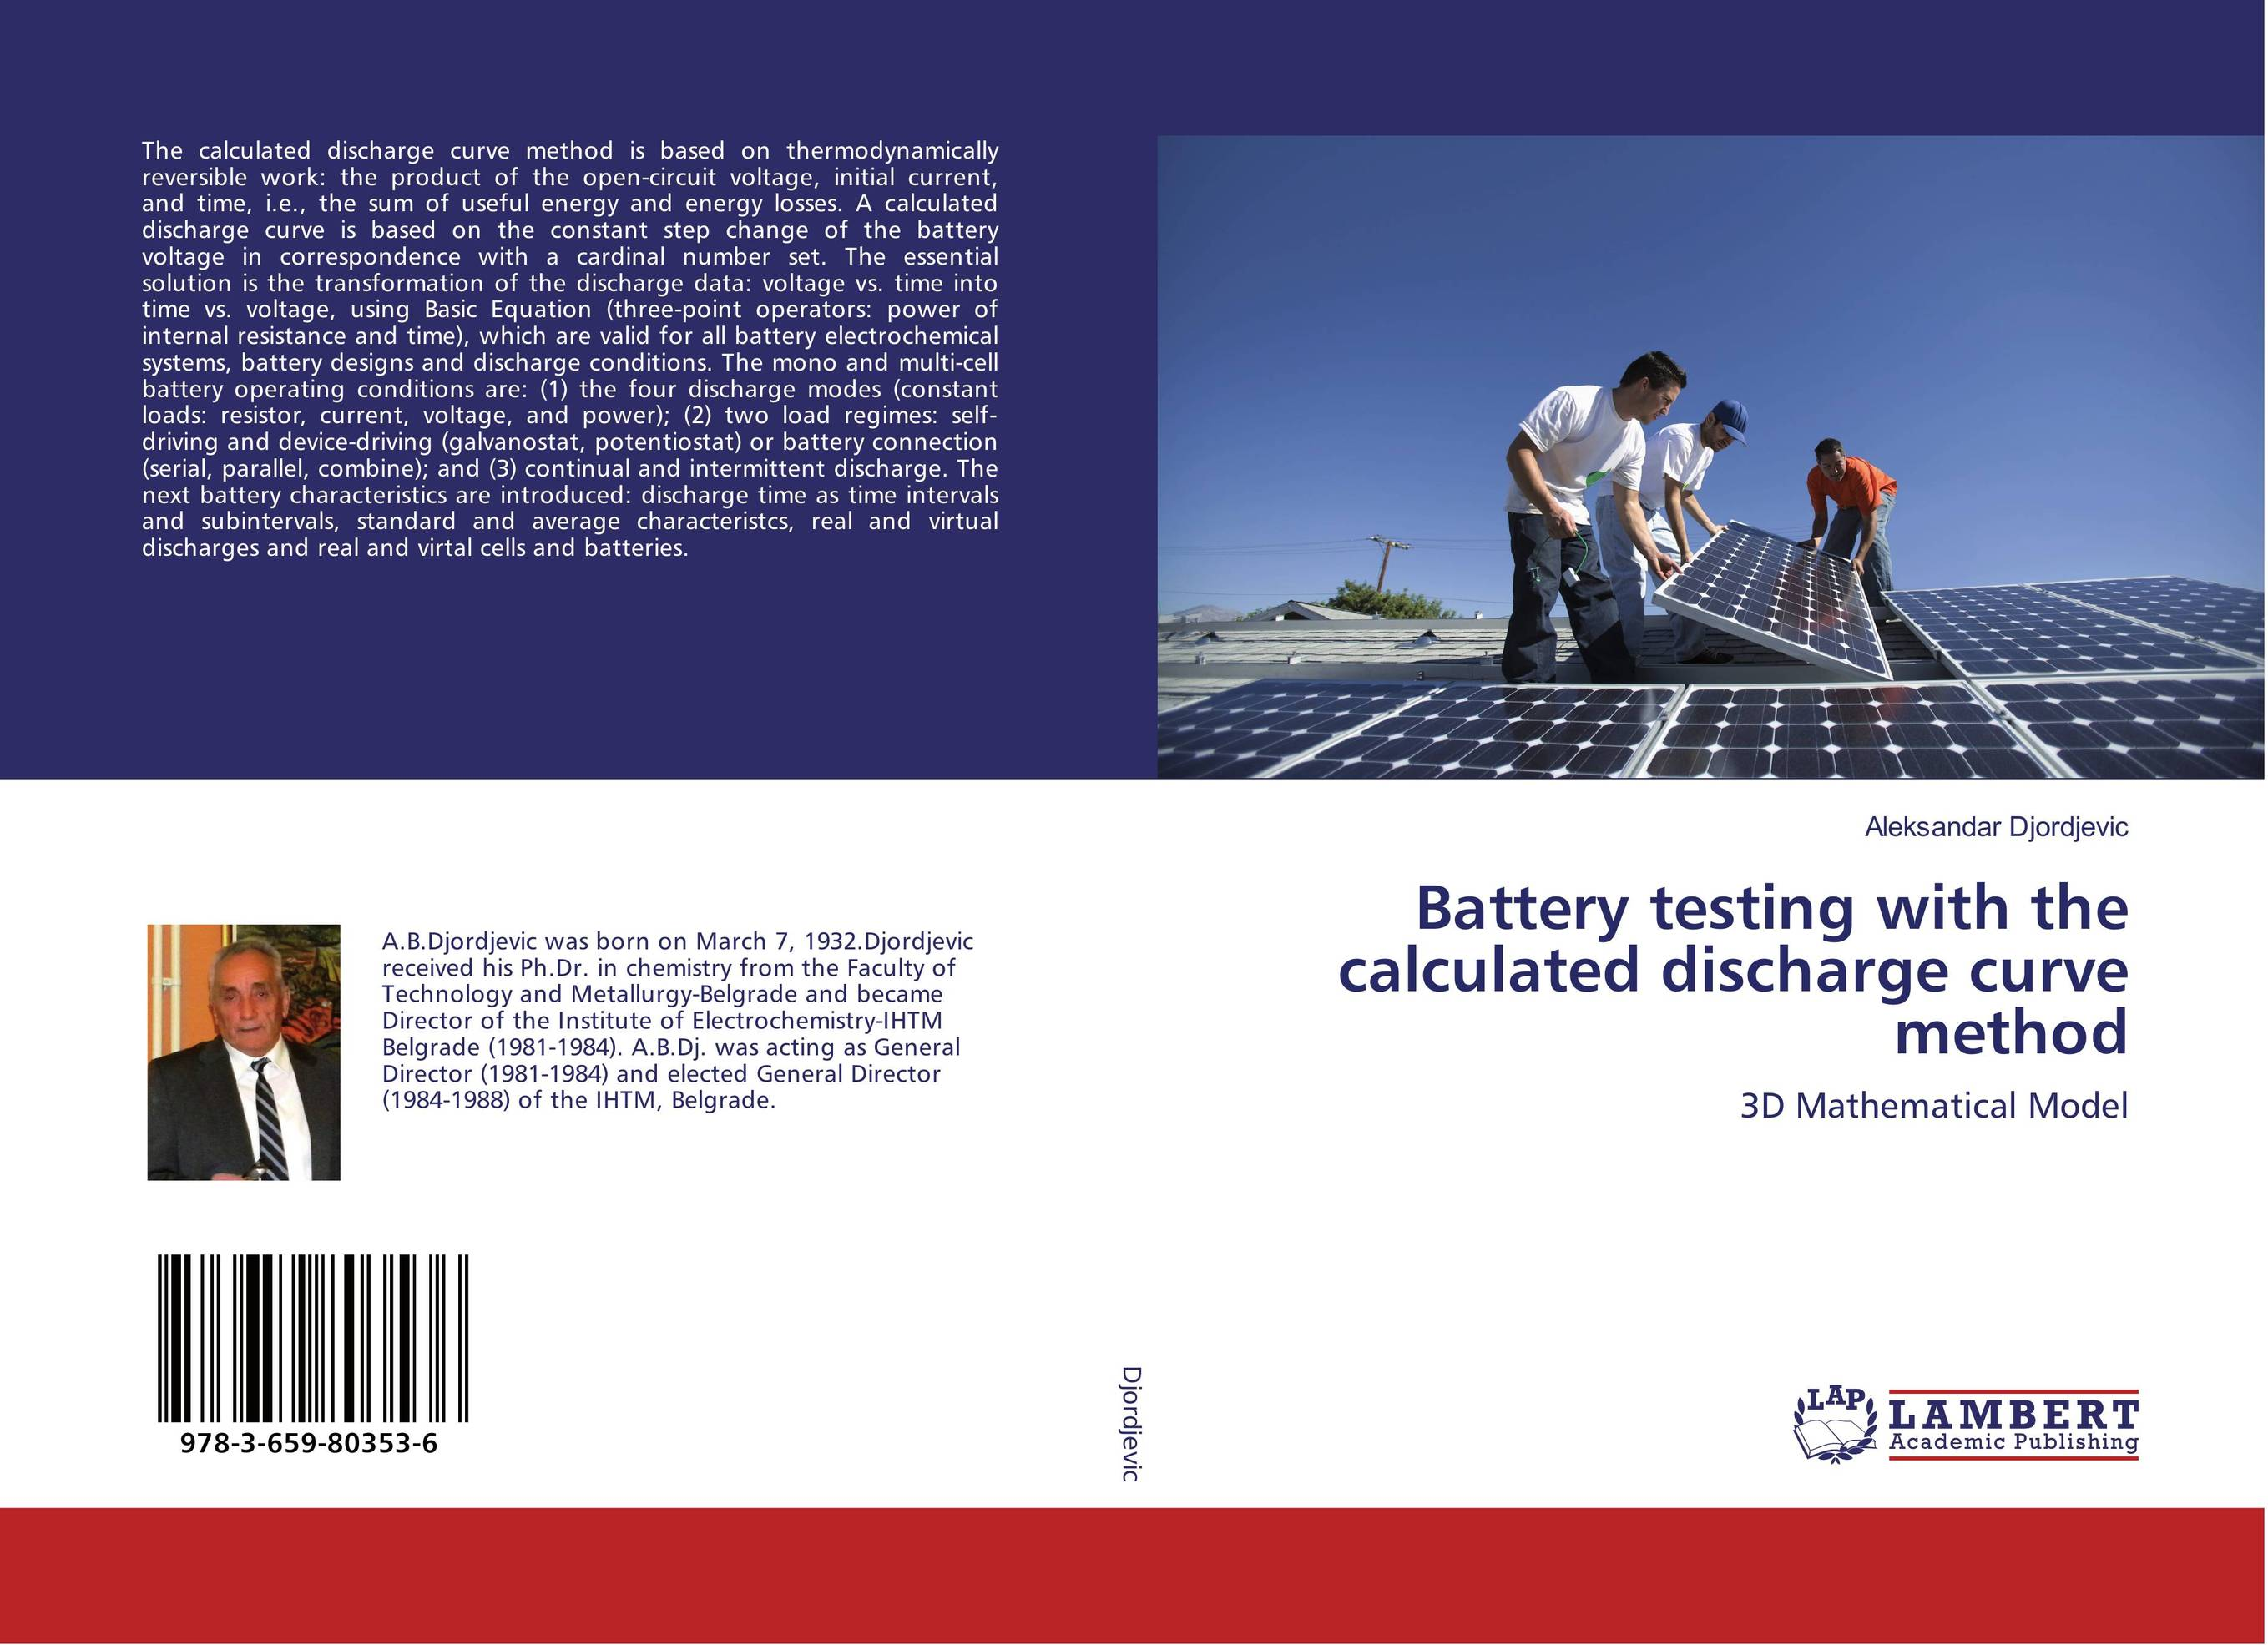 Battery testing with the calculated discharge curve method add501a antifreeze battery fluids refractometer time limit promotion indicate freezing point for propylene and ethylene glycol